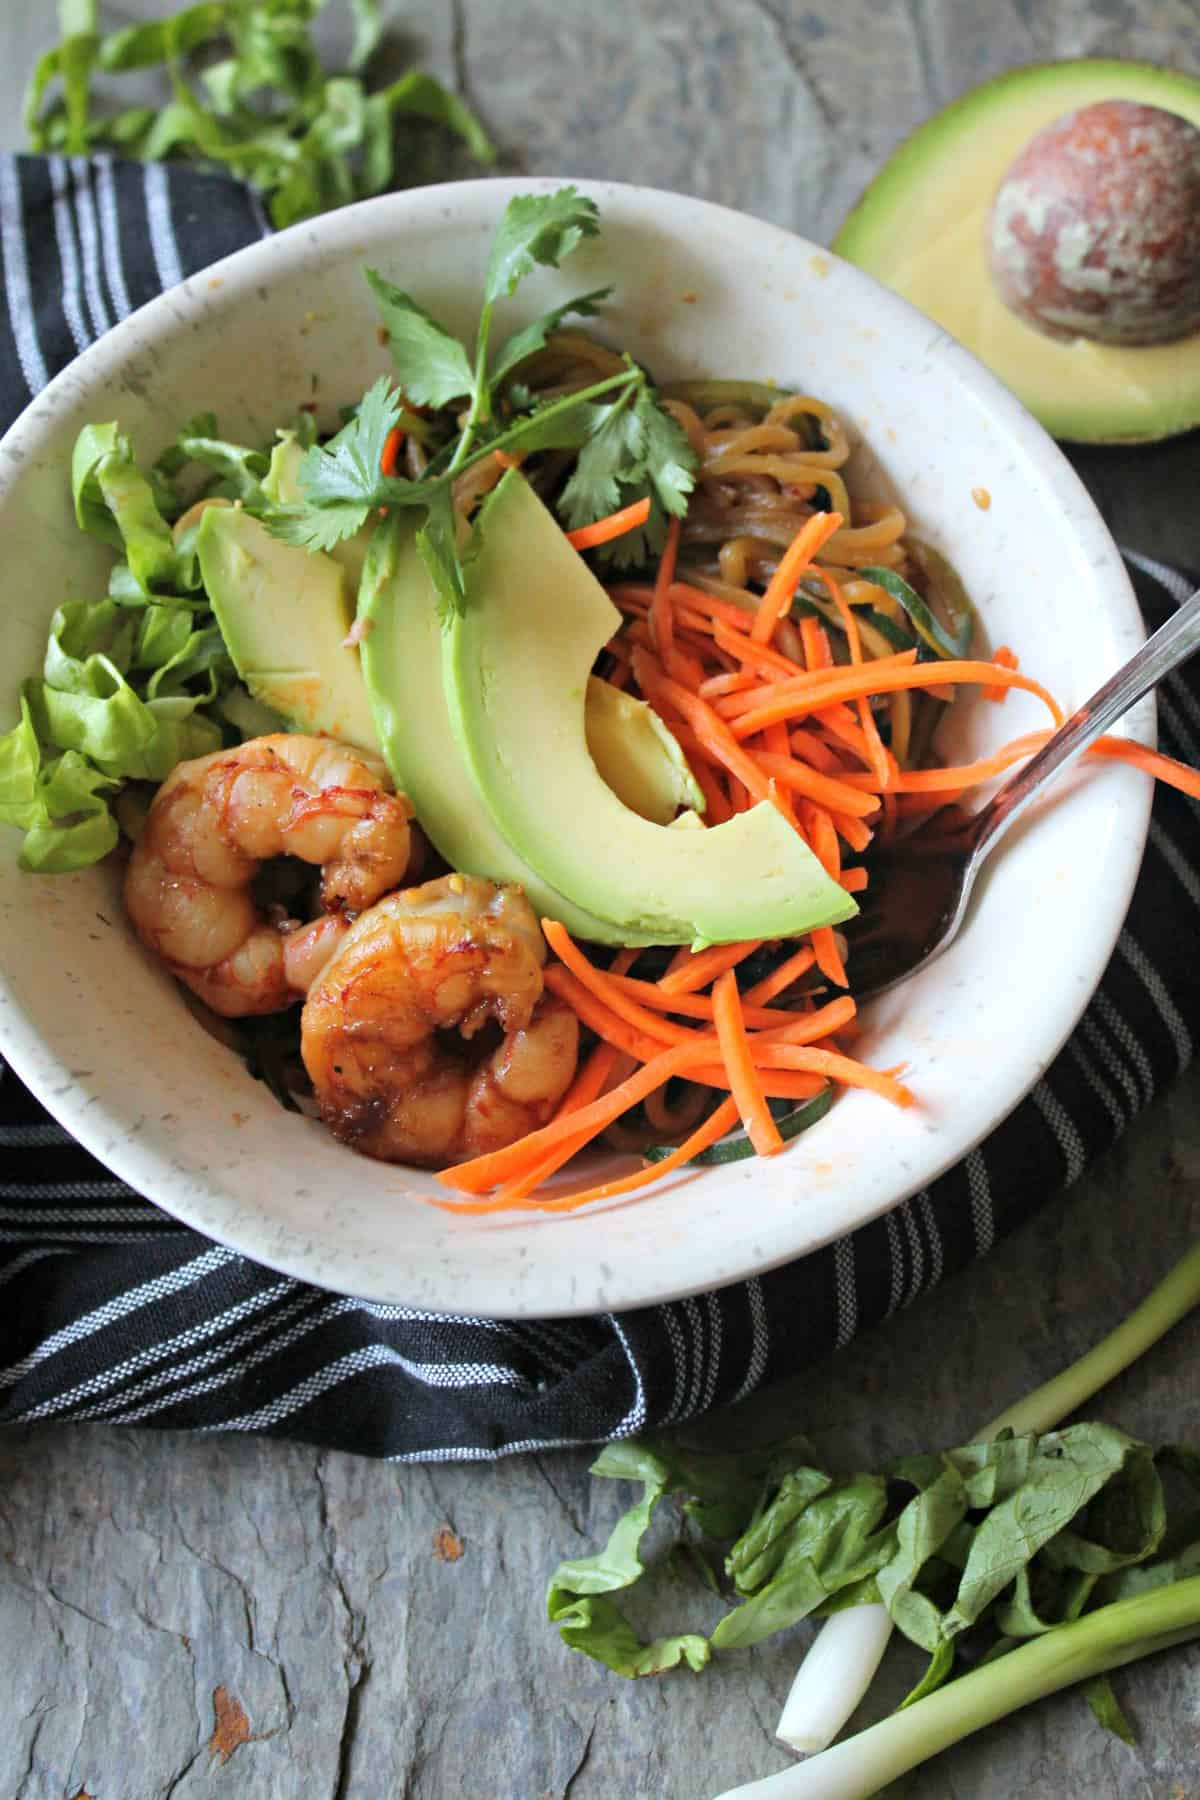 Shrimp & Avocado Zoodle Salad Bowls! Add your favorite protein to these these healthful zucchini noodle bowls for a quick weeknight meal you'll love!